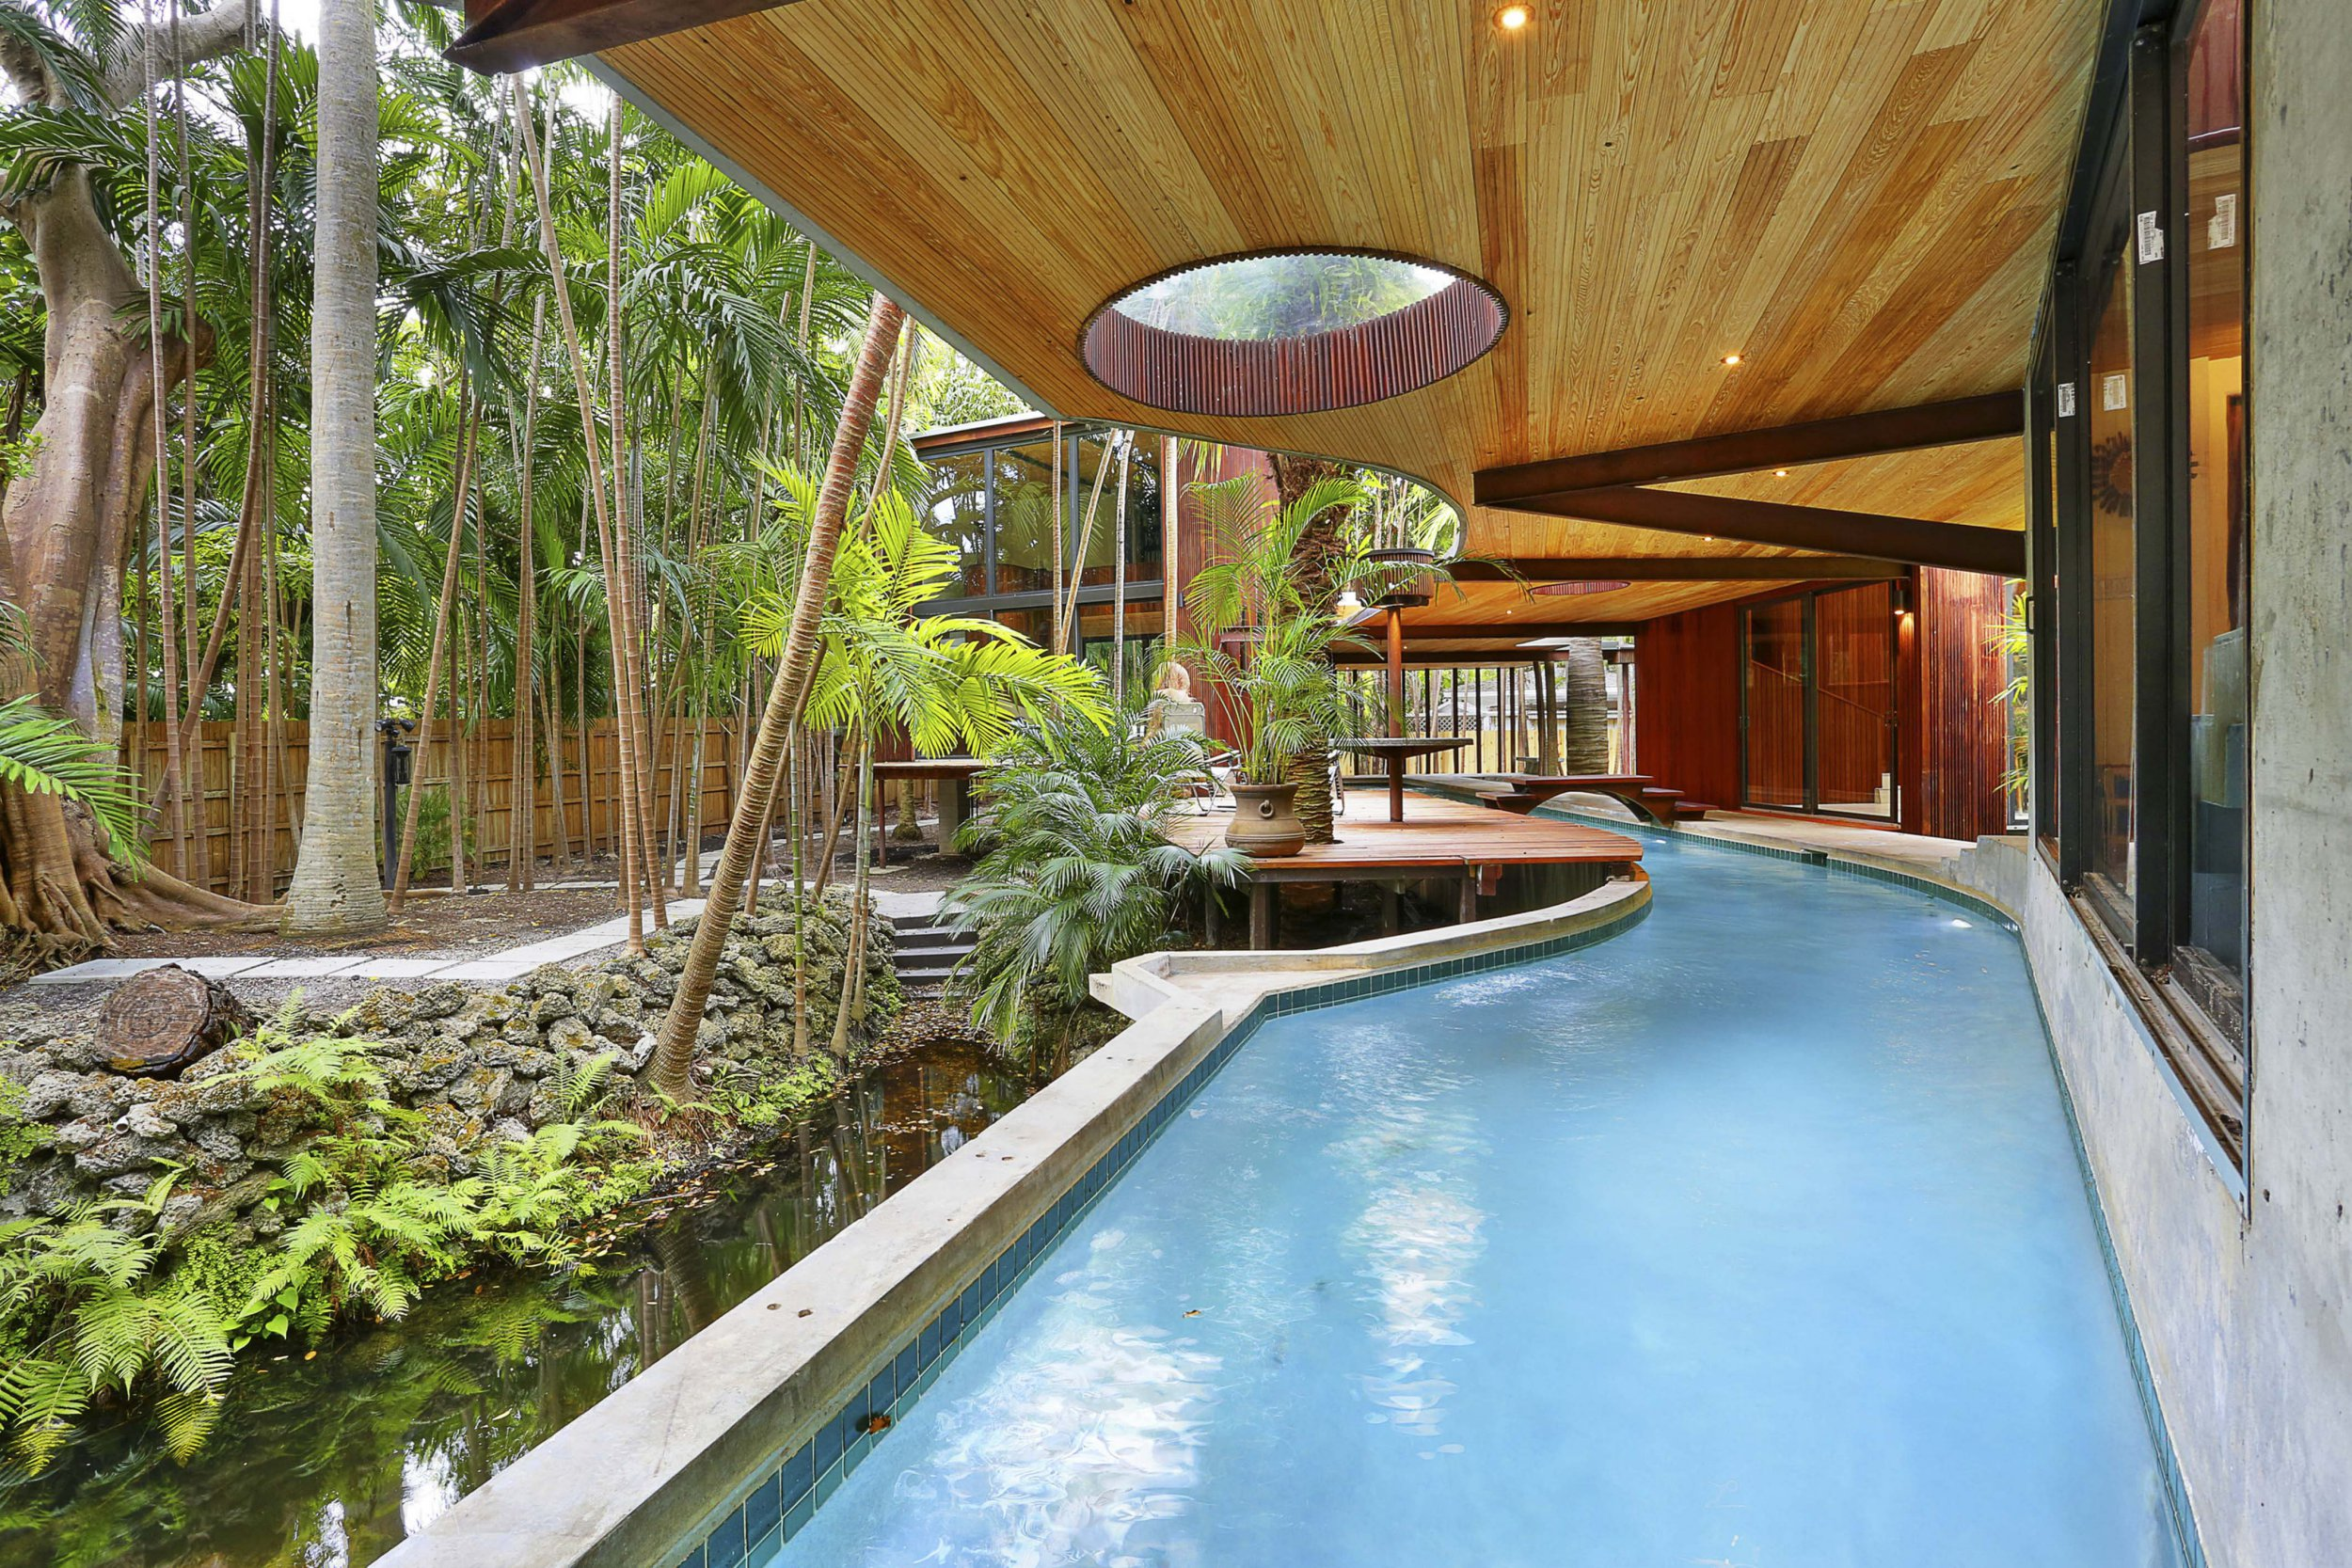 Amazing house has its own river that lets you swim from room to room